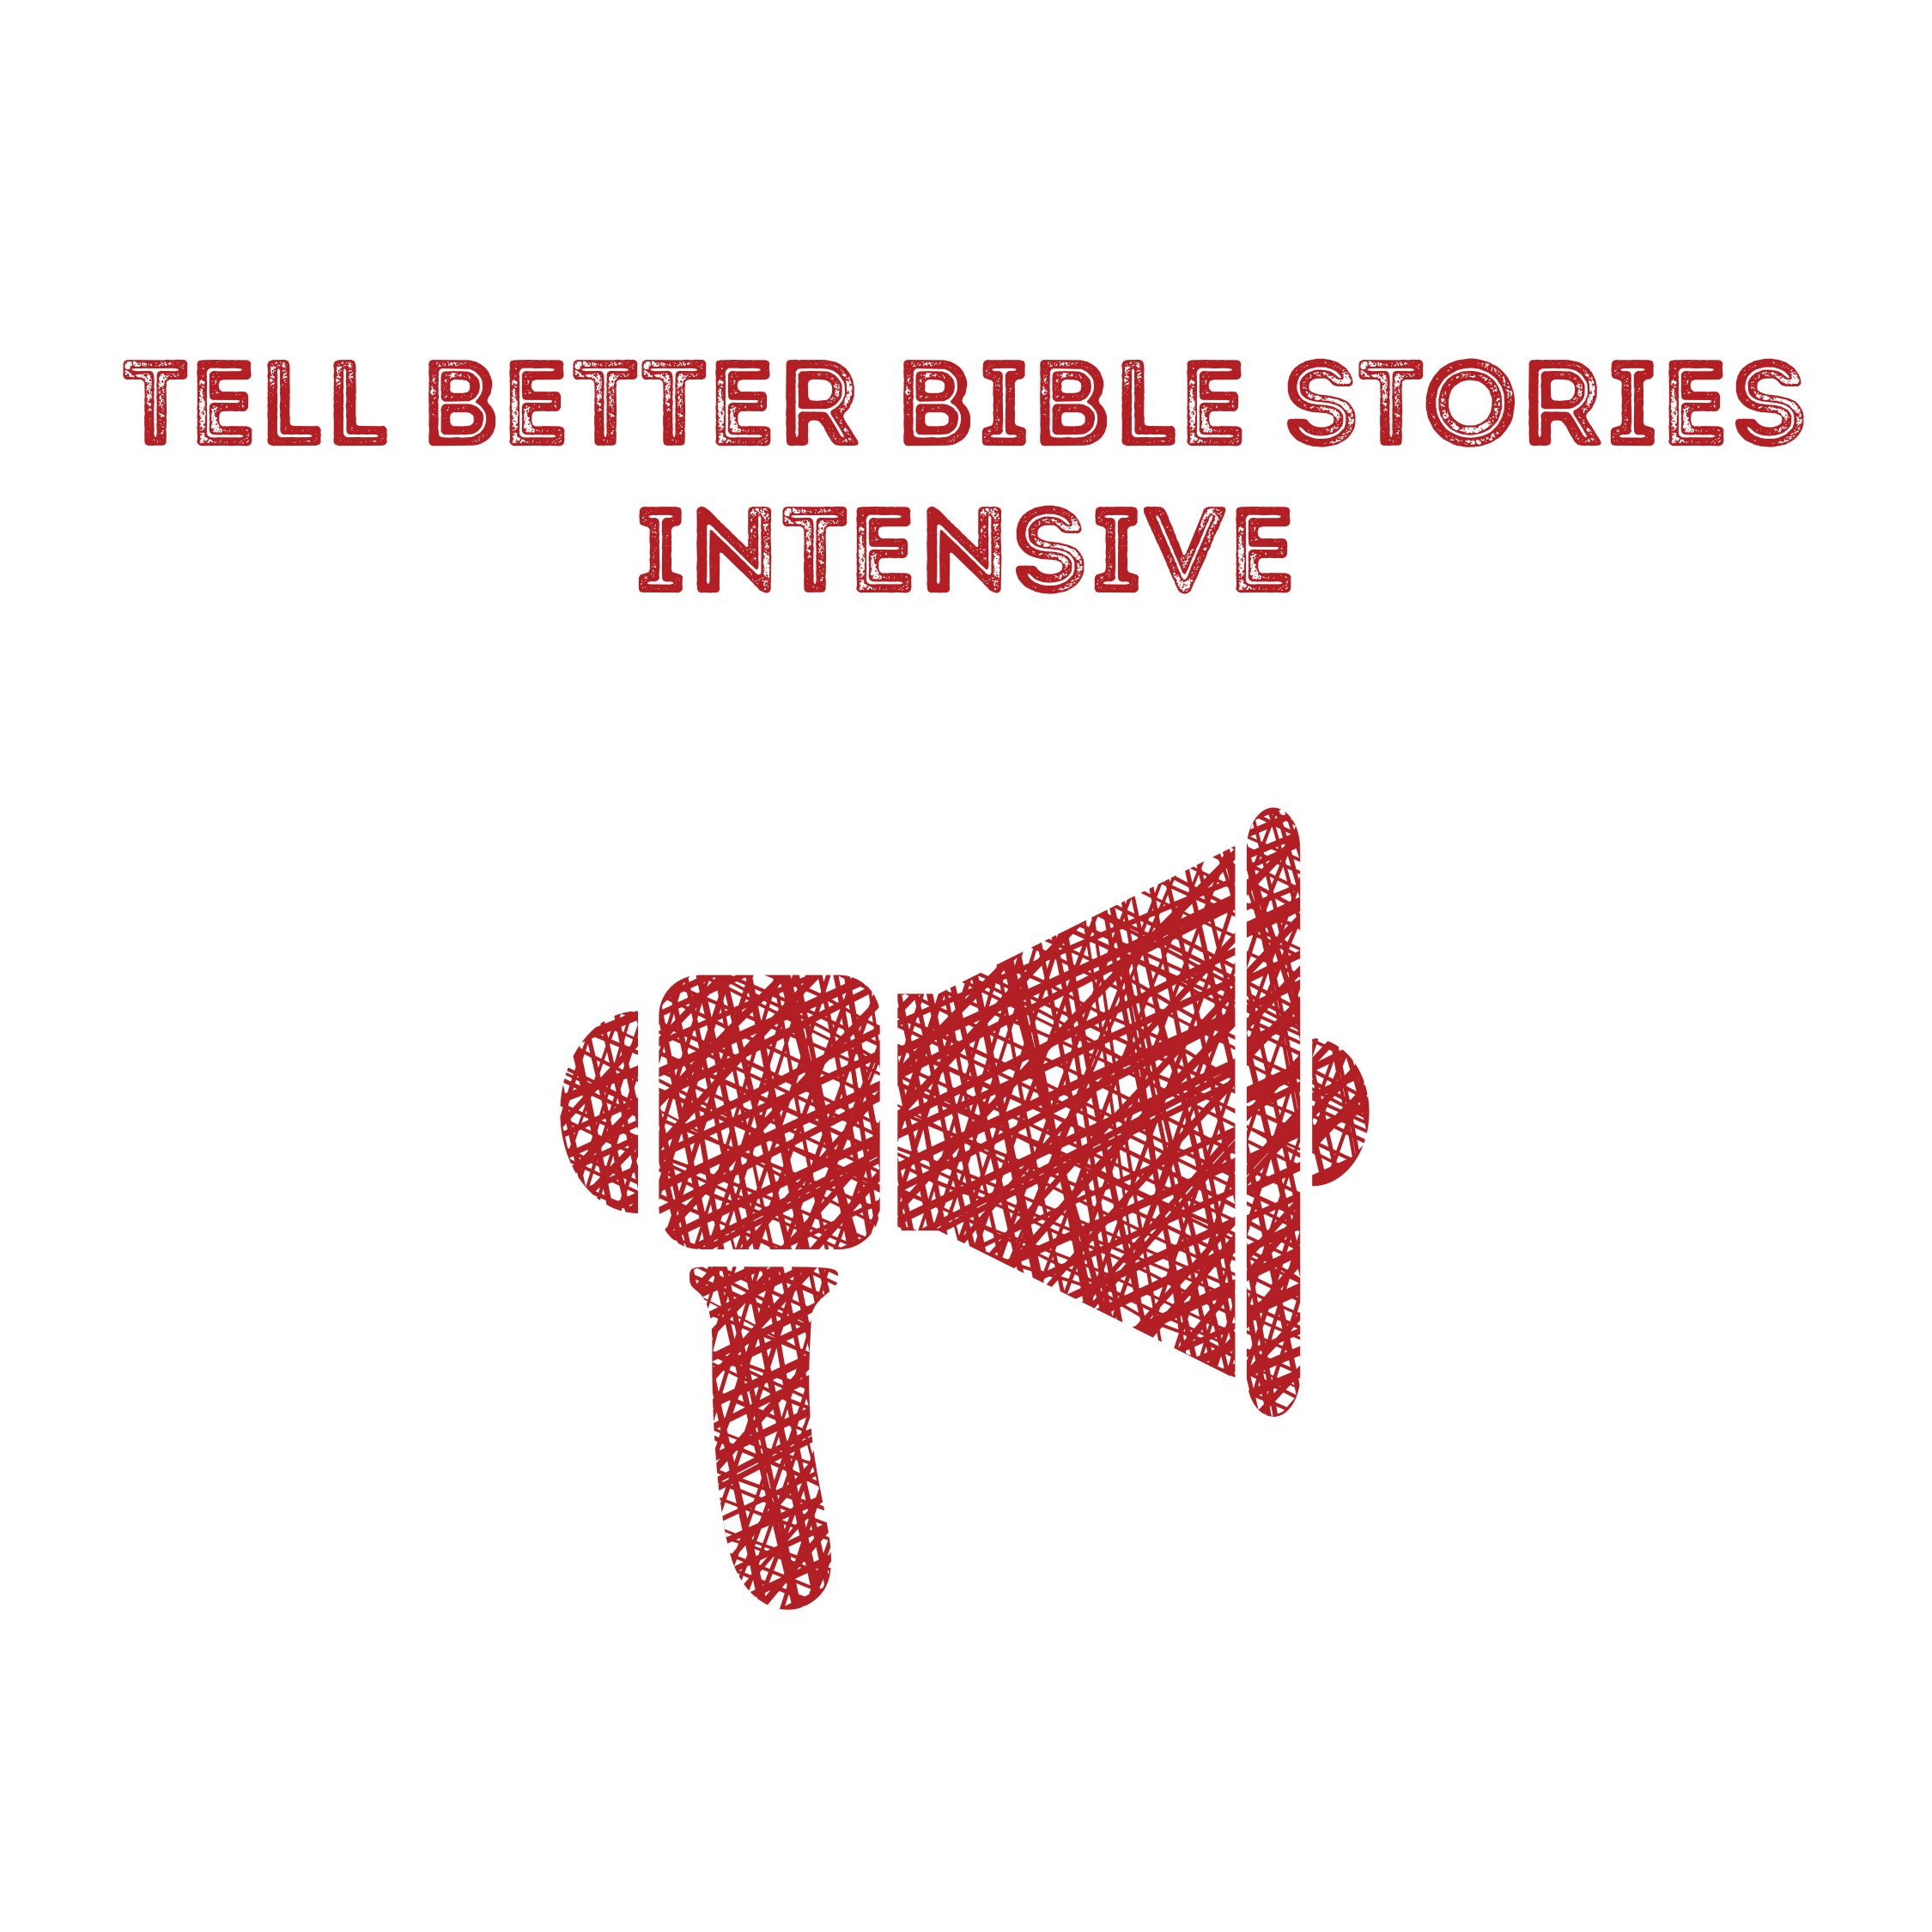 Tell Better Bible Stories Intensive